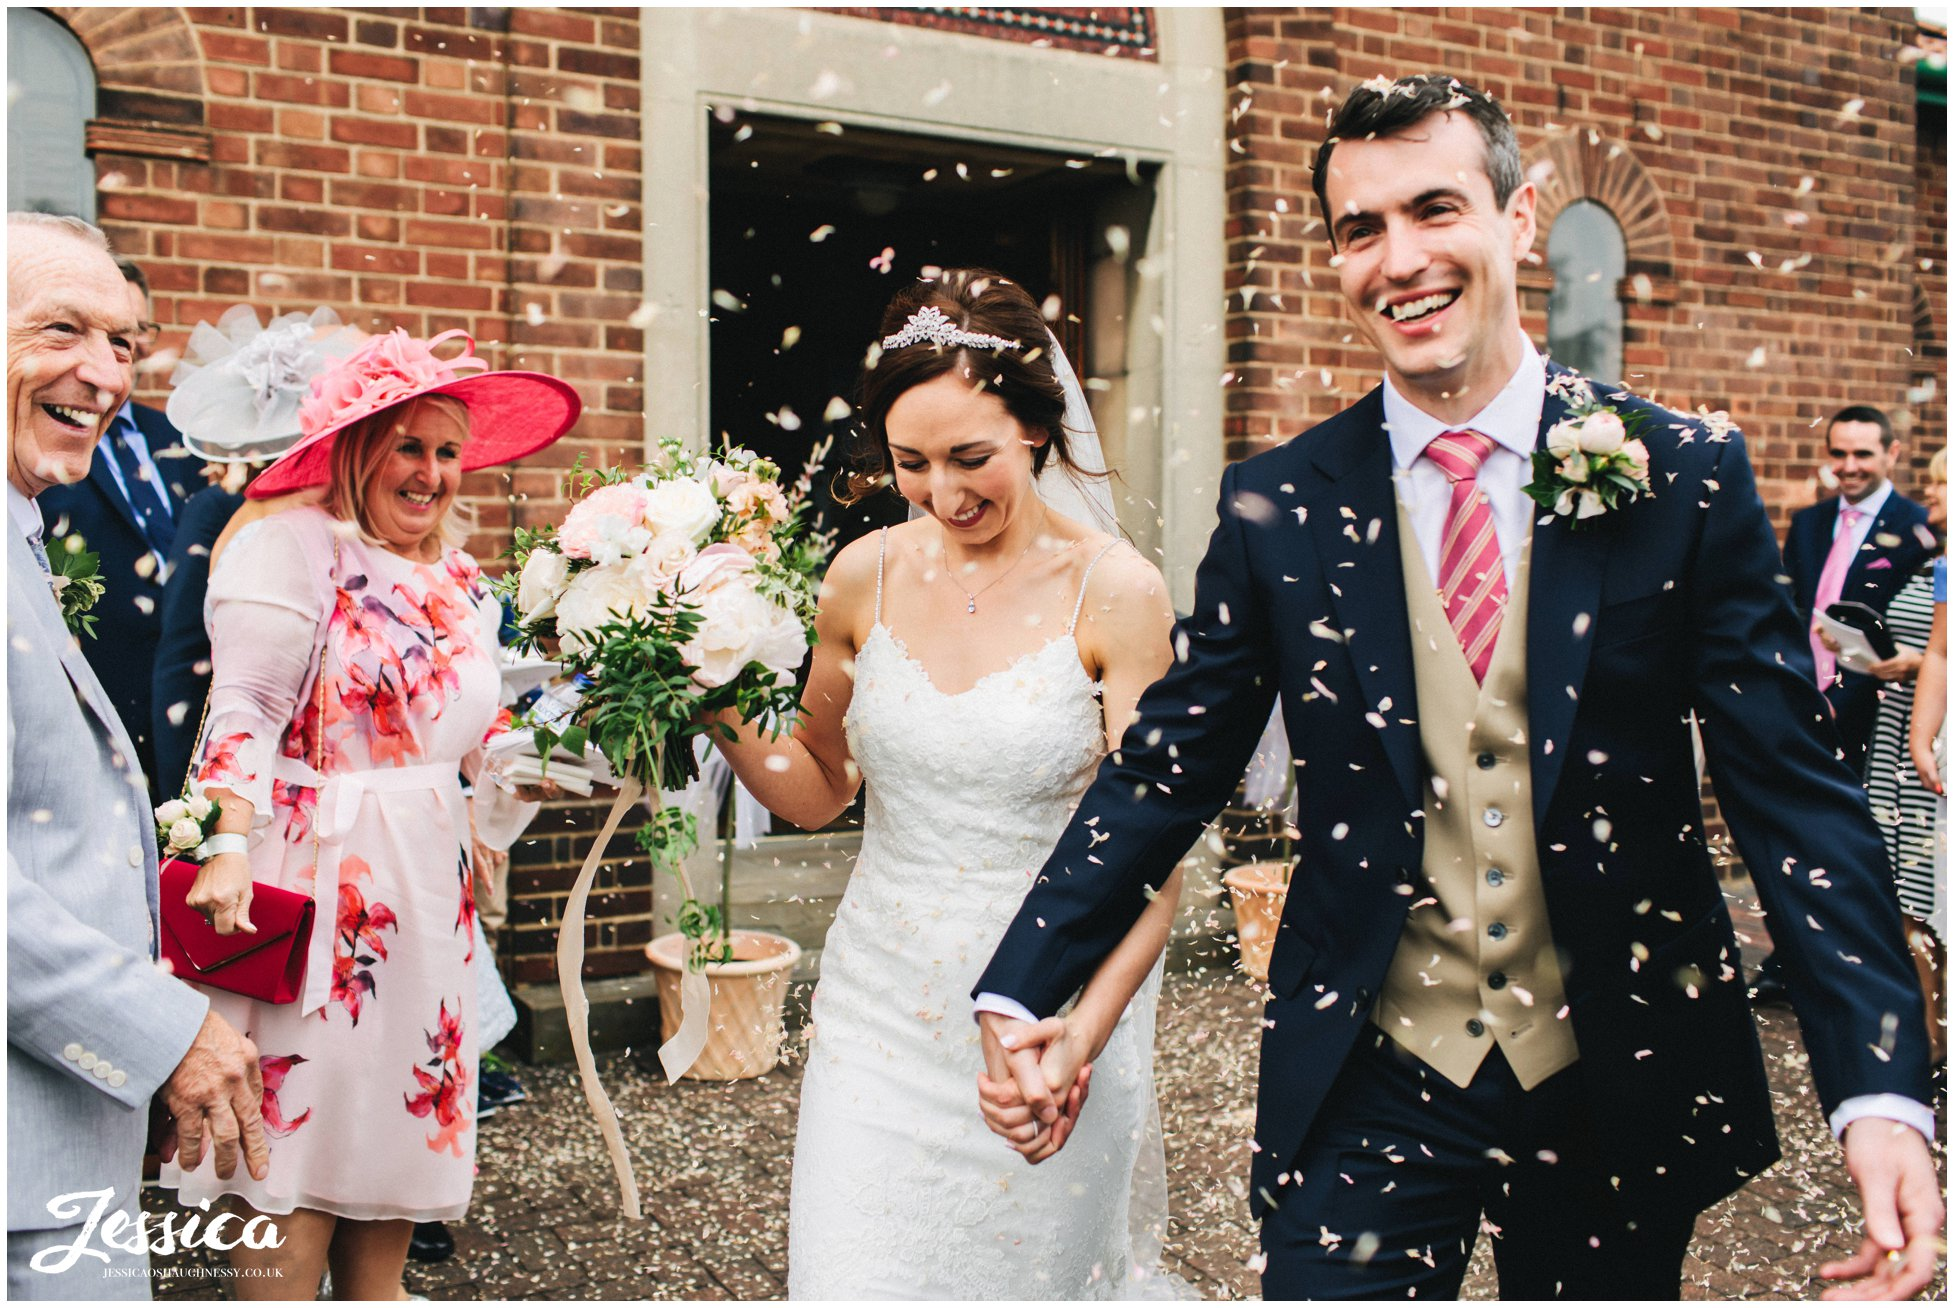 the bride and groom are showered in confetti at their wirral wedding